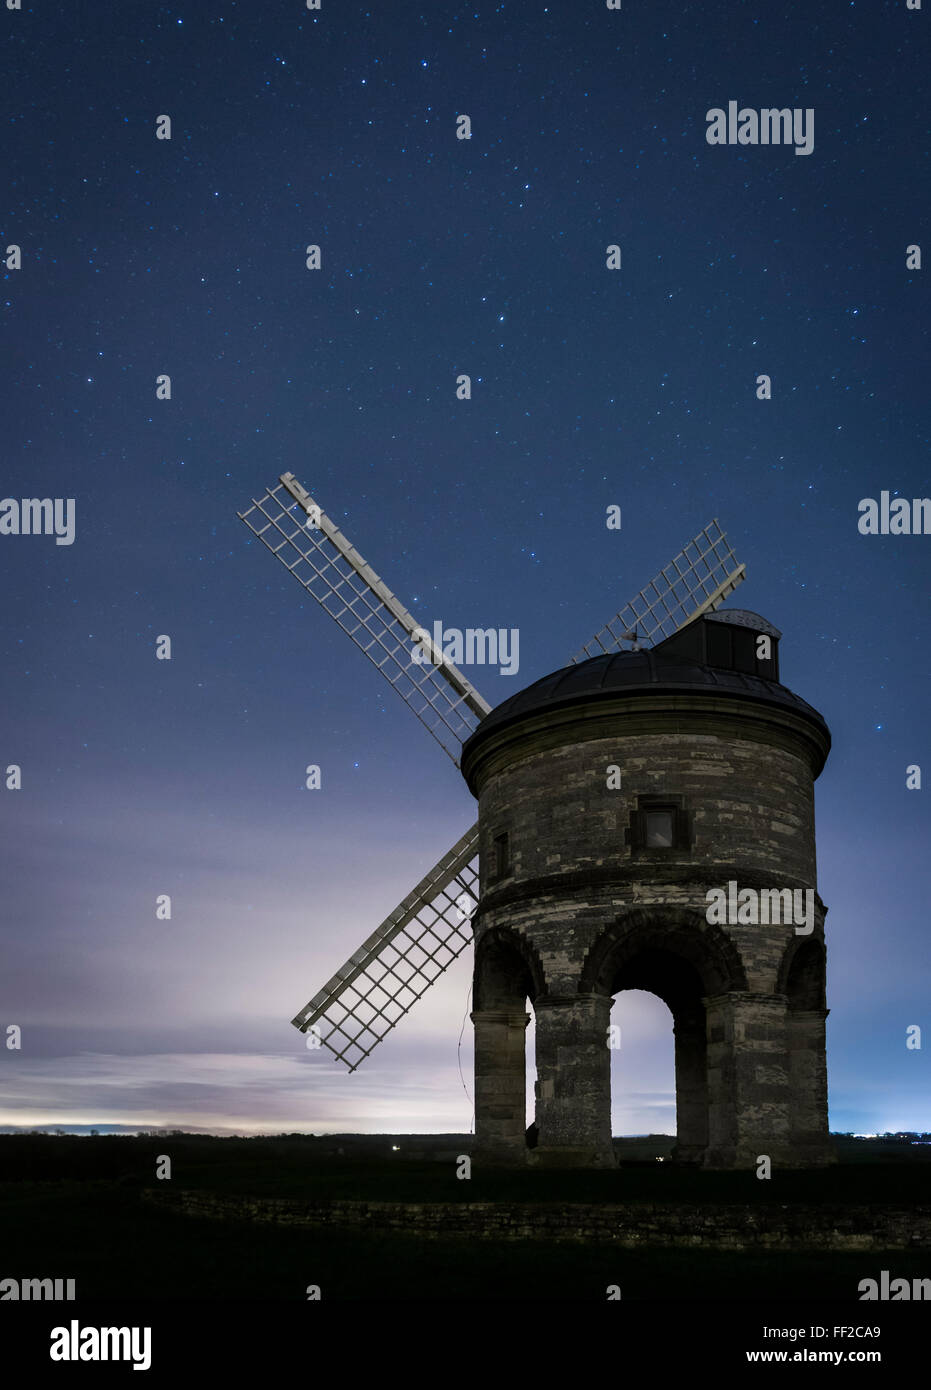 Chesterton Windmill at night with a stary sky, Warwickshire, England, UK - Stock Image